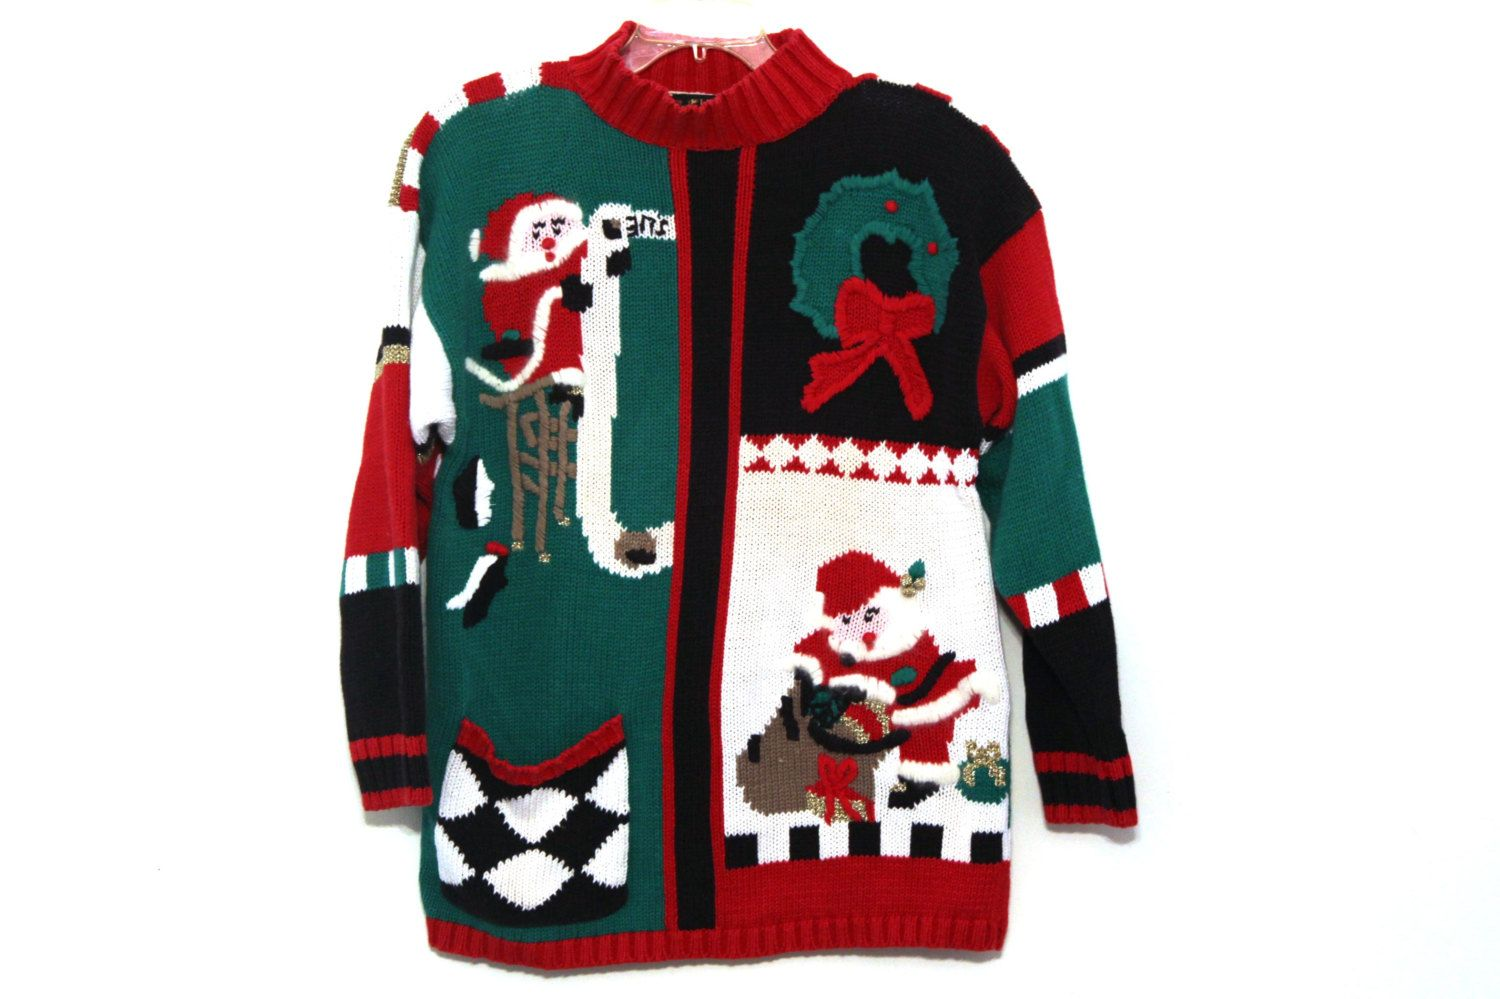 Vintage Christmas sweater santa red green black by